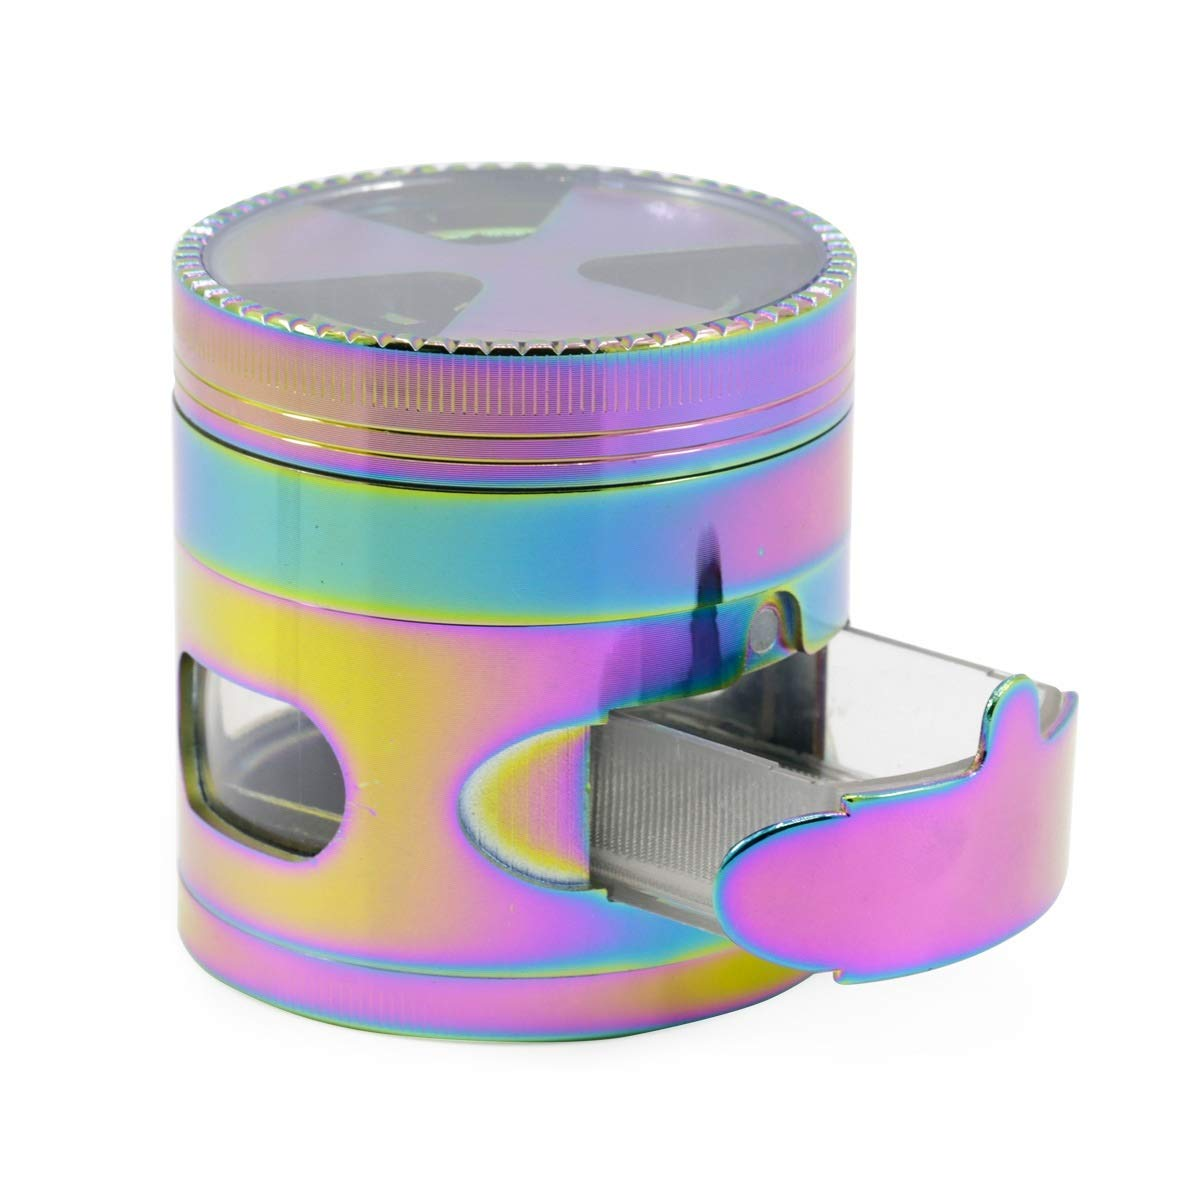 Yzyamz Herb Grinder Zinc Alloy Four Layer Ice Blue Signal Toothed Drawer Window 3 Leaf Colorful Grinder Portable Manual Grinder Bench Grinder, 2.5in'' (63Mm) by Yzyamz